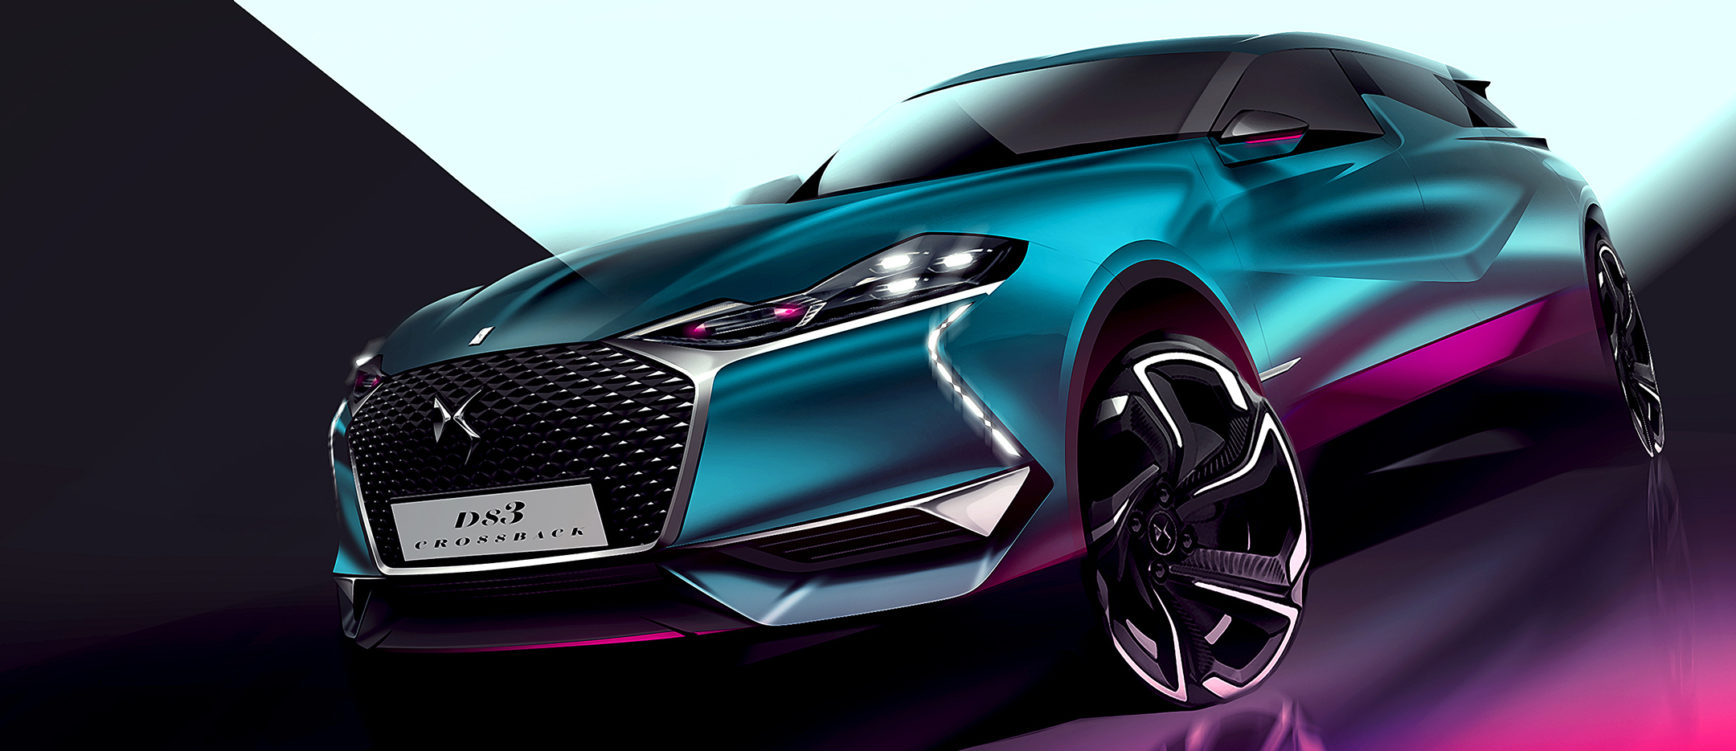 DS 3 Crossback - 2018 - sketch front